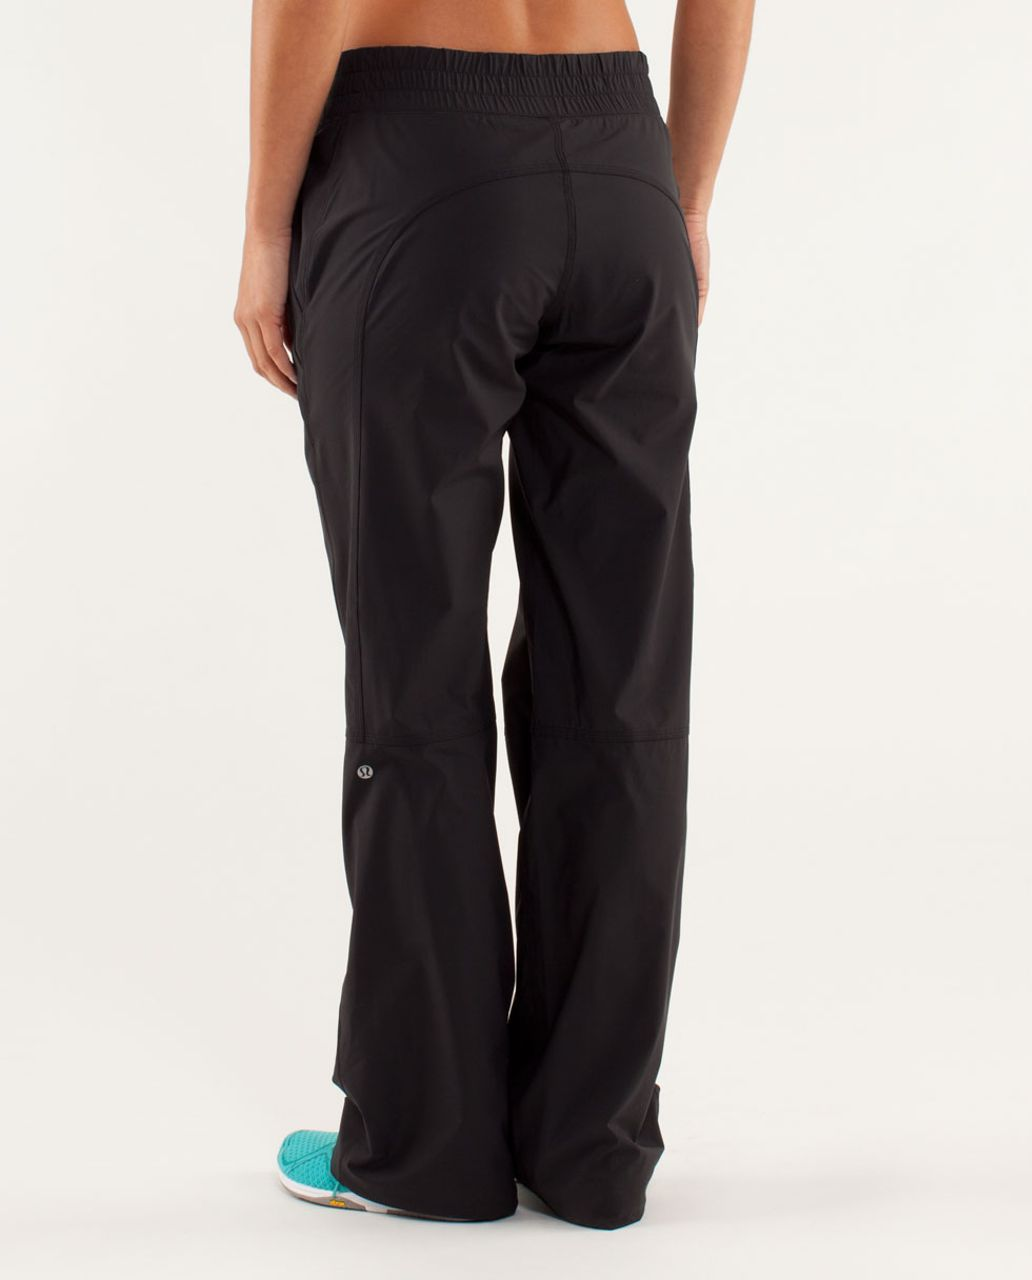 76750e8d09 Lululemon Run: Dog Runner Pant - Black - lulu fanatics